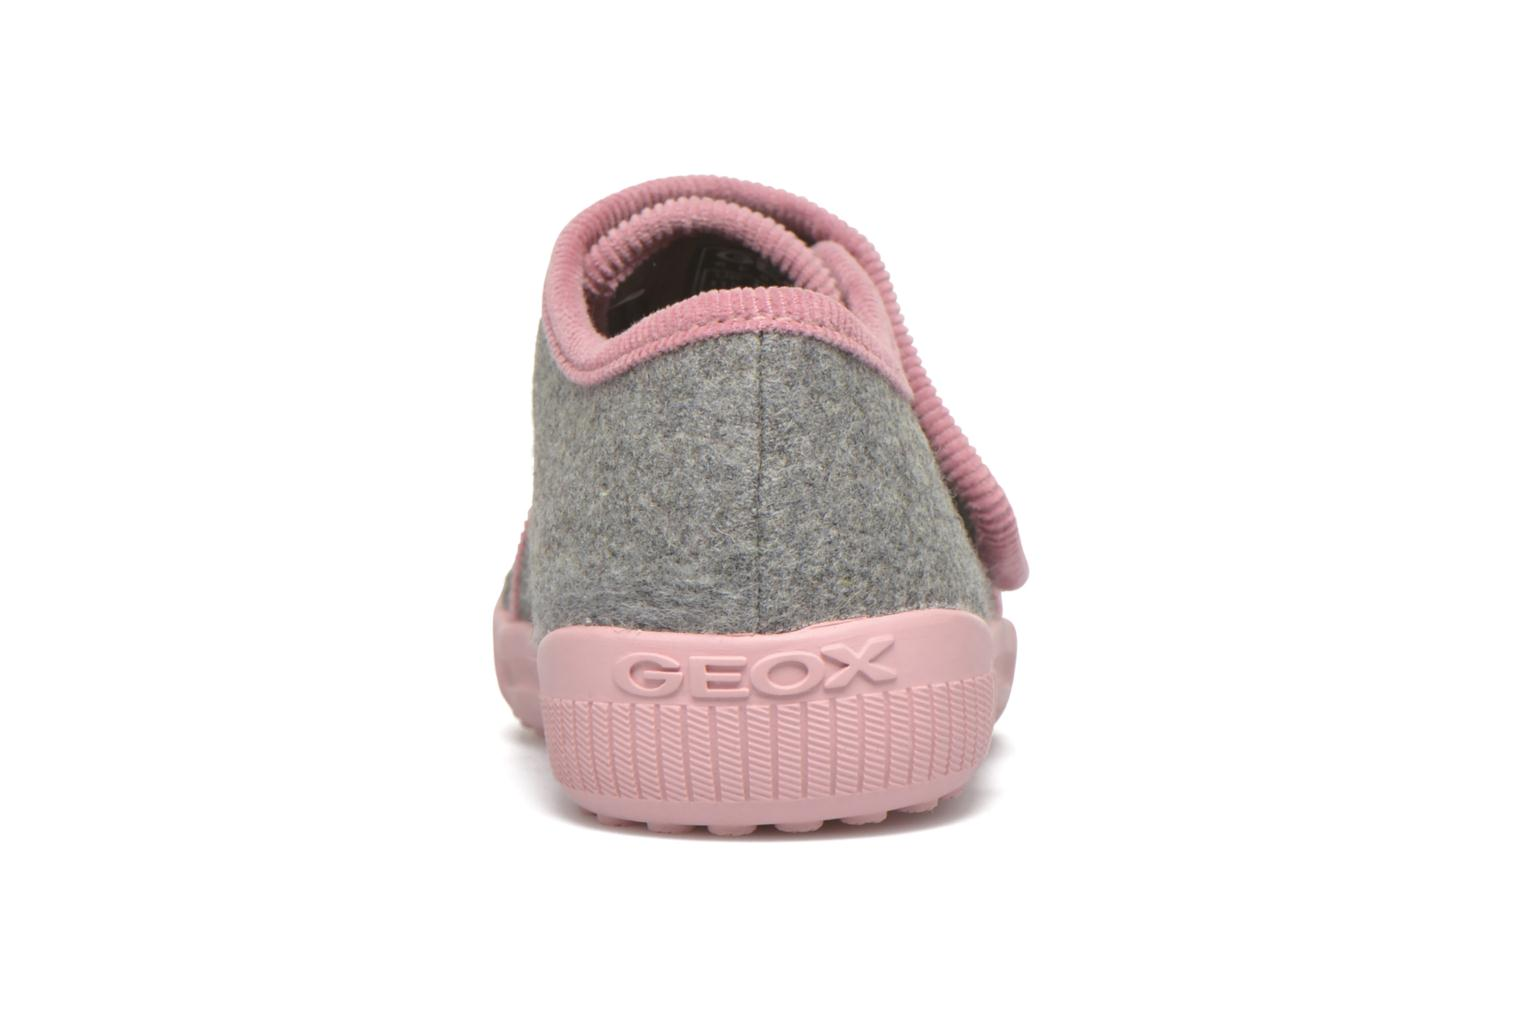 Chaussons Geox J Home G. A J4414A Gris vue droite